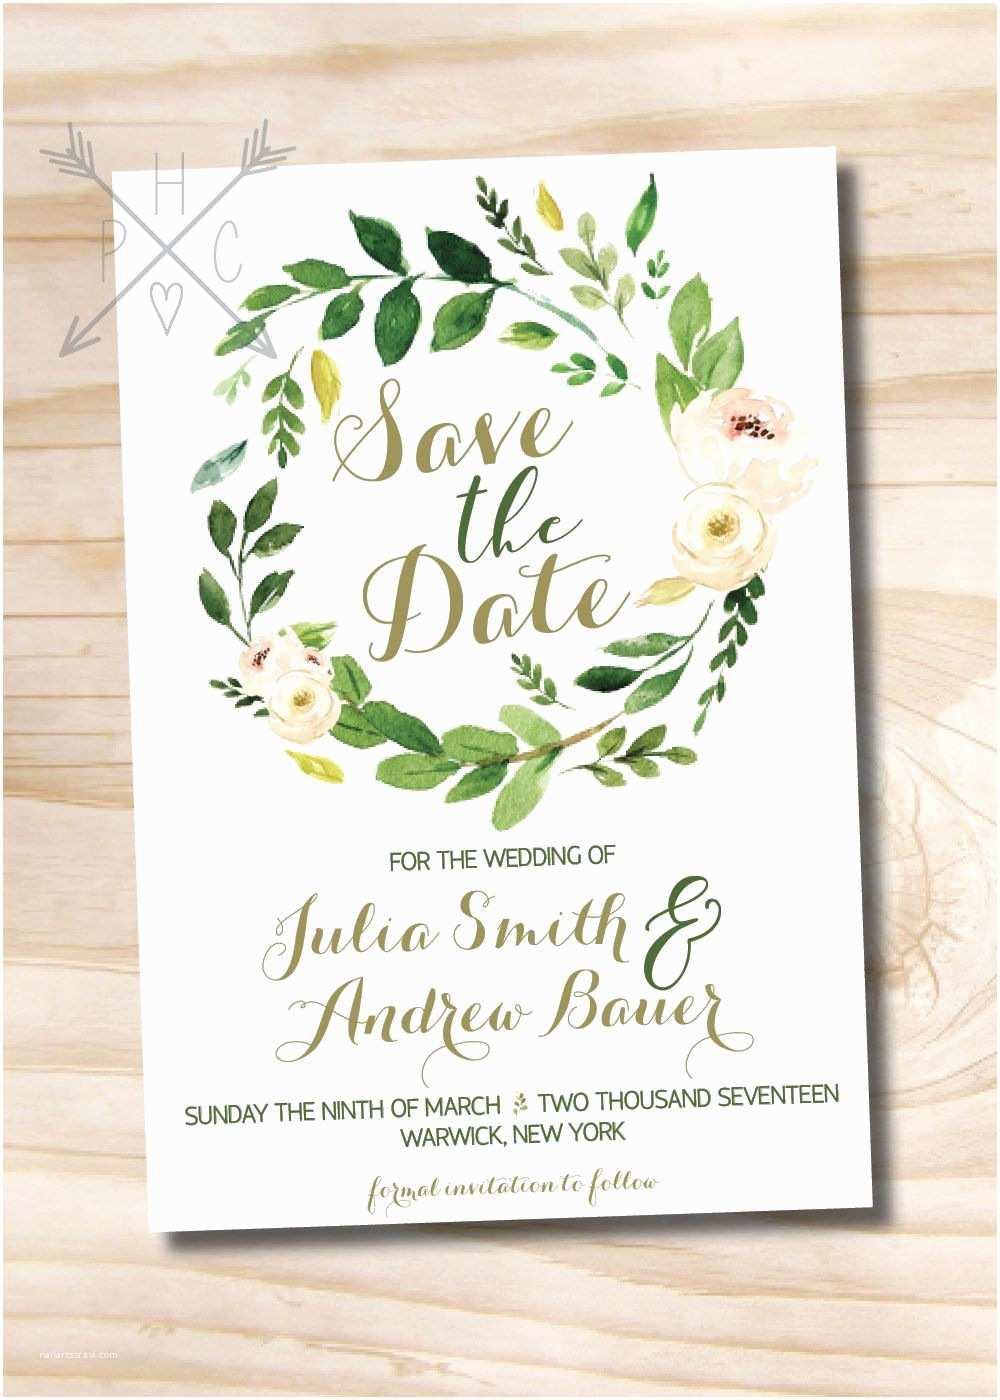 Watercolor Floral Wedding Invitations Watercolor Floral Wreath Wedding Save The Date